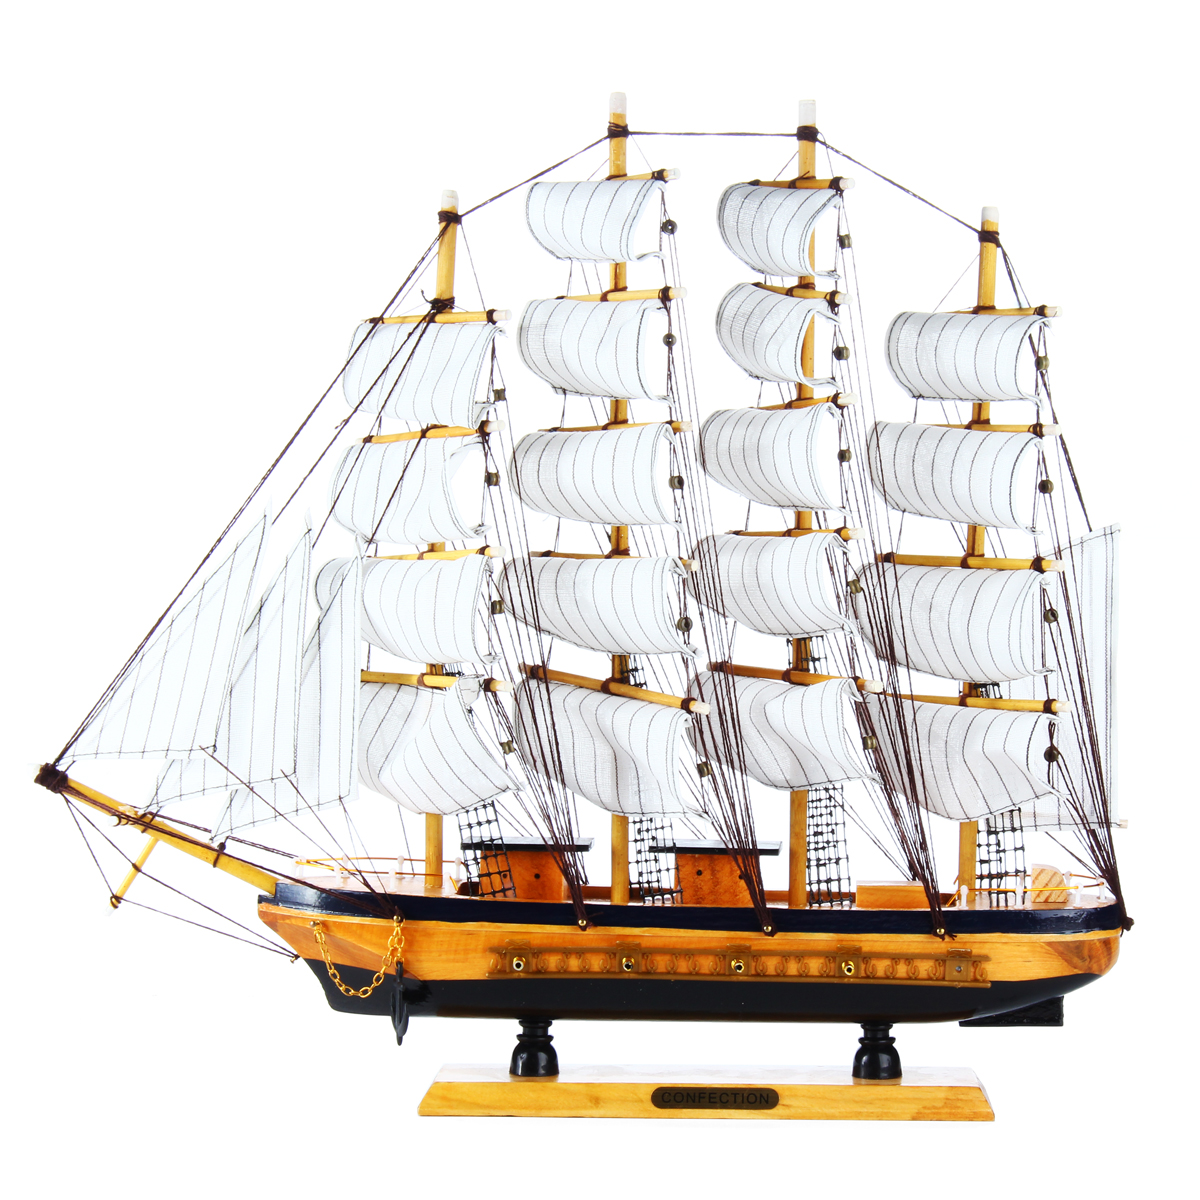 "20x3.5x17"" Wooden Sailing Boat Wood Sailboat Home Decor Toy Decoration Mediterranean Assembly Model Kits Home Decor Craft Dislpay Gift"